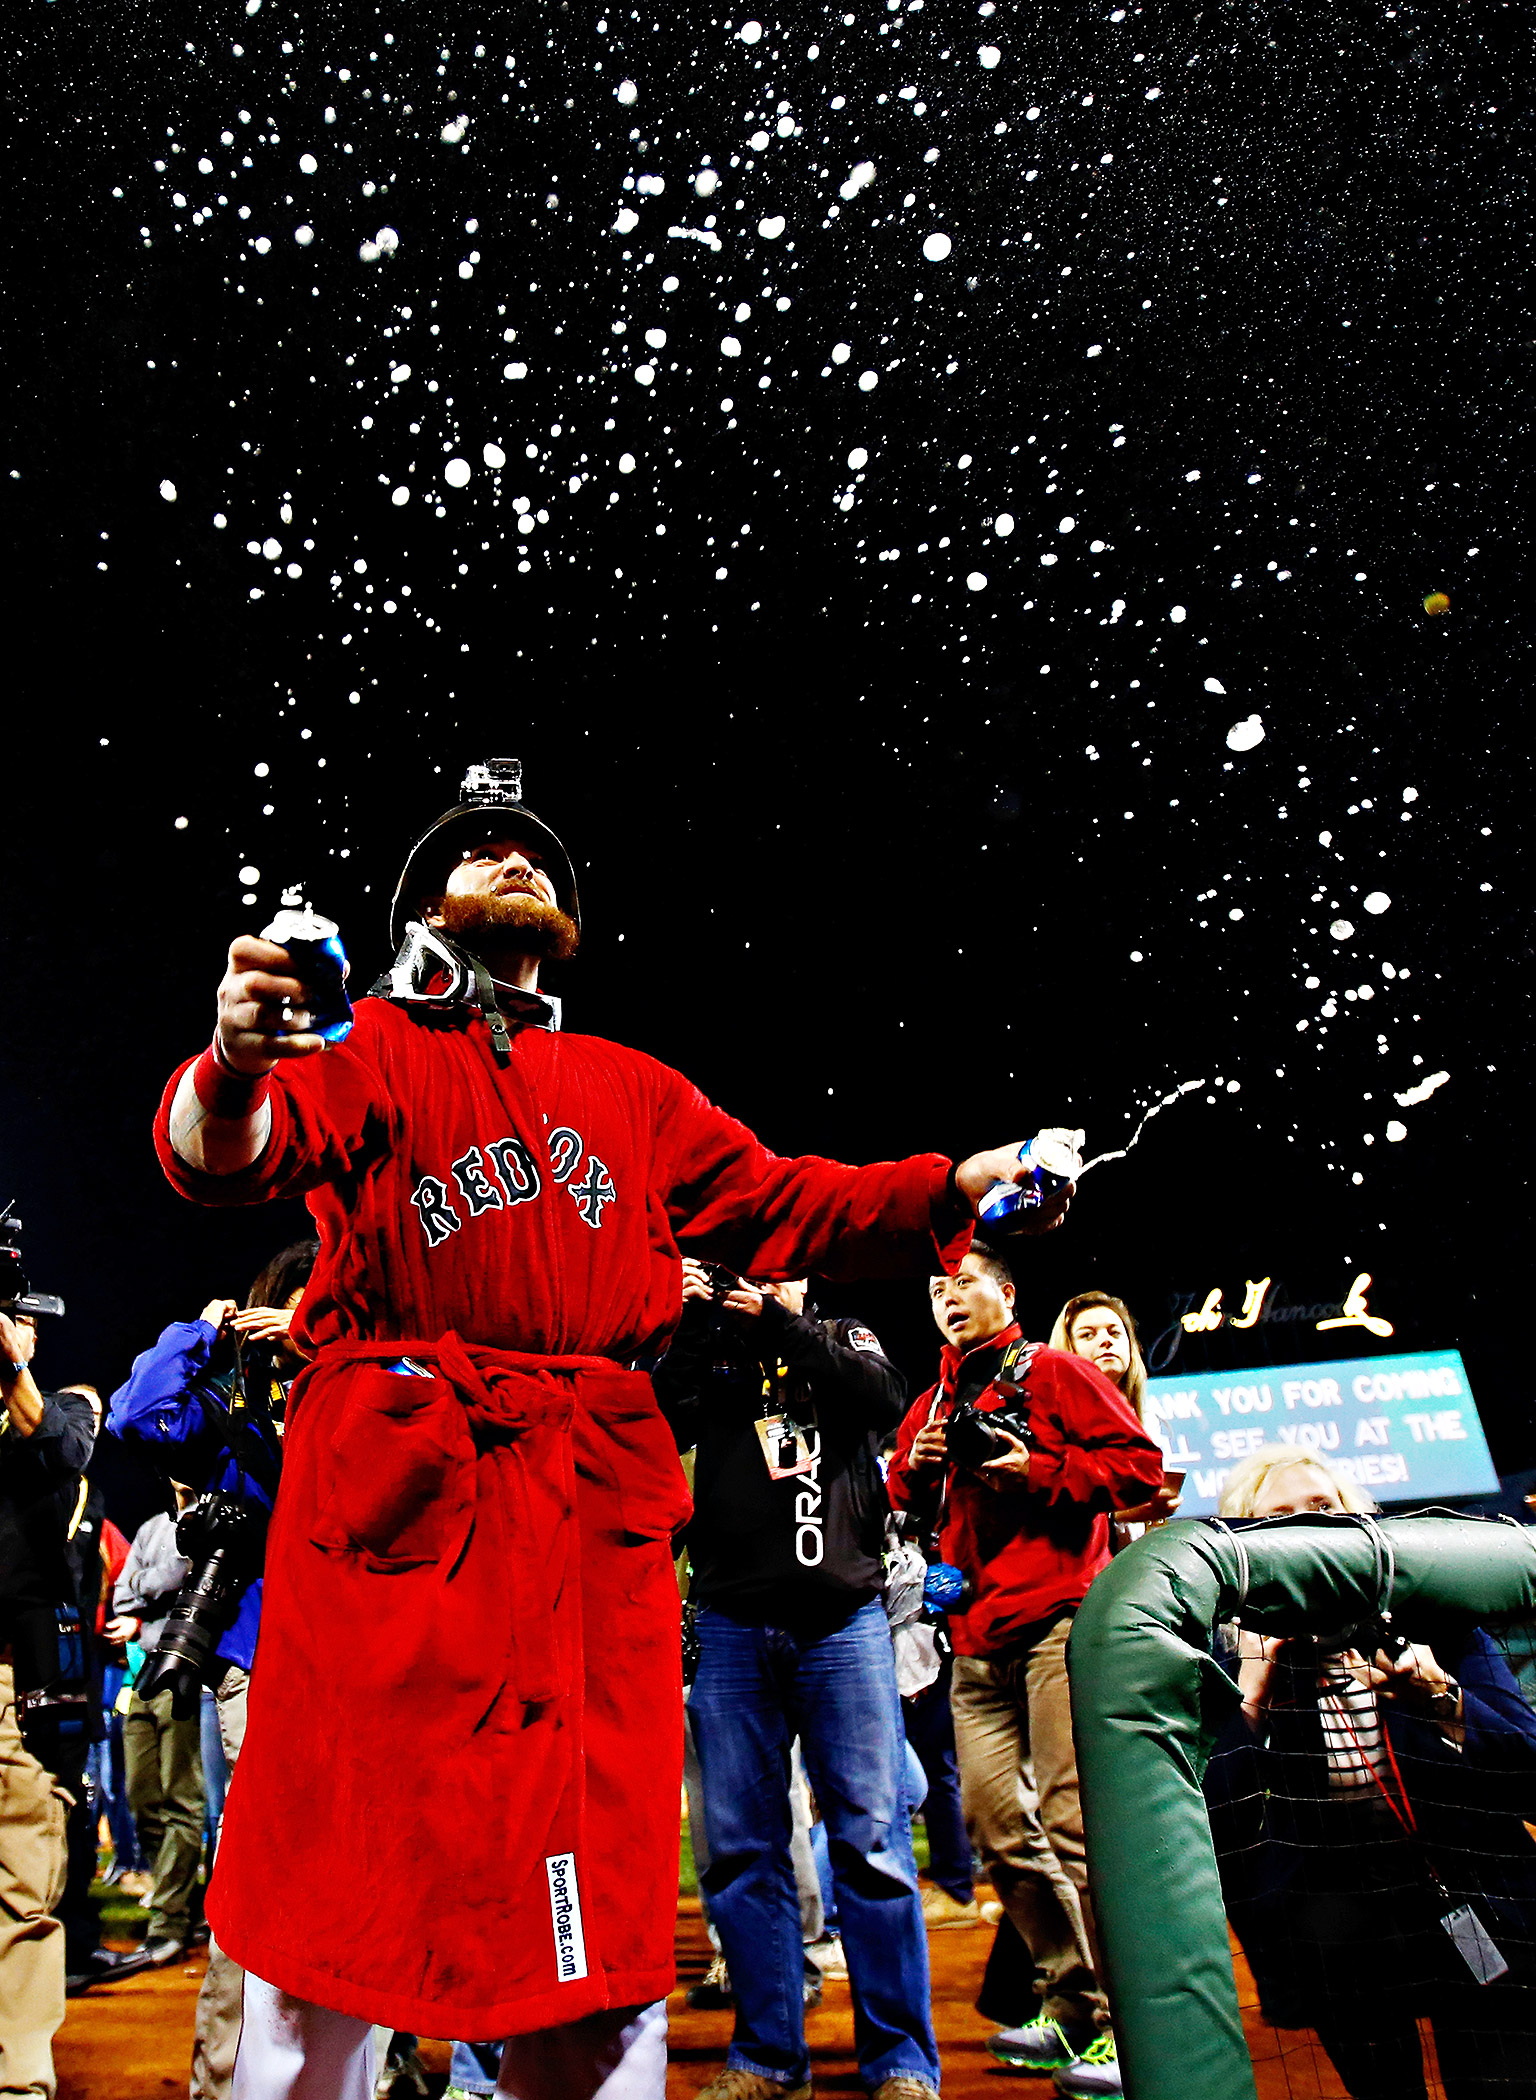 Robed Red Sox